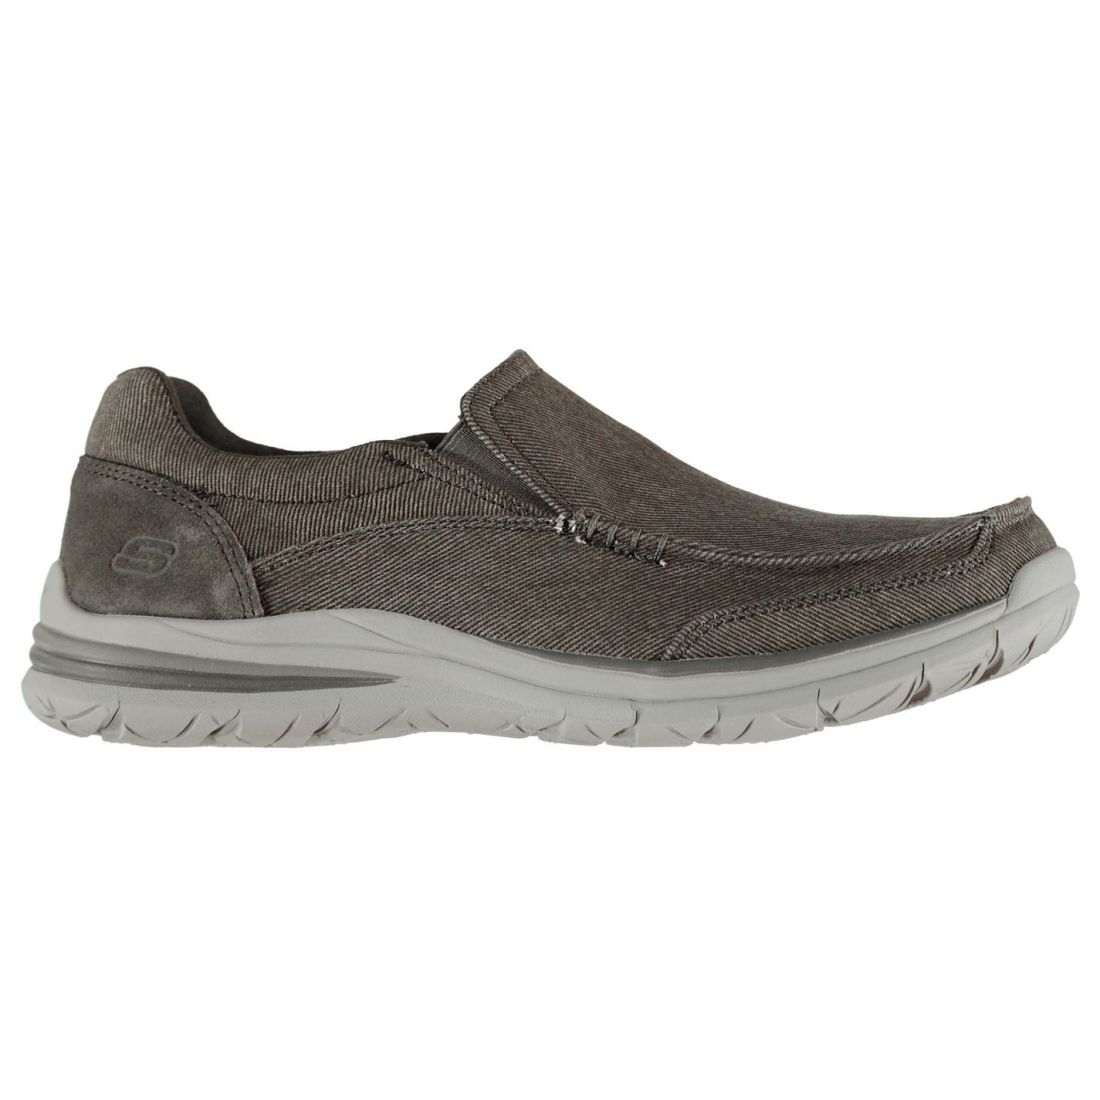 a56ebd088 Image is loading Skechers-Mens-Superior-Vorado-Shoes-Slip-On-Trainers-